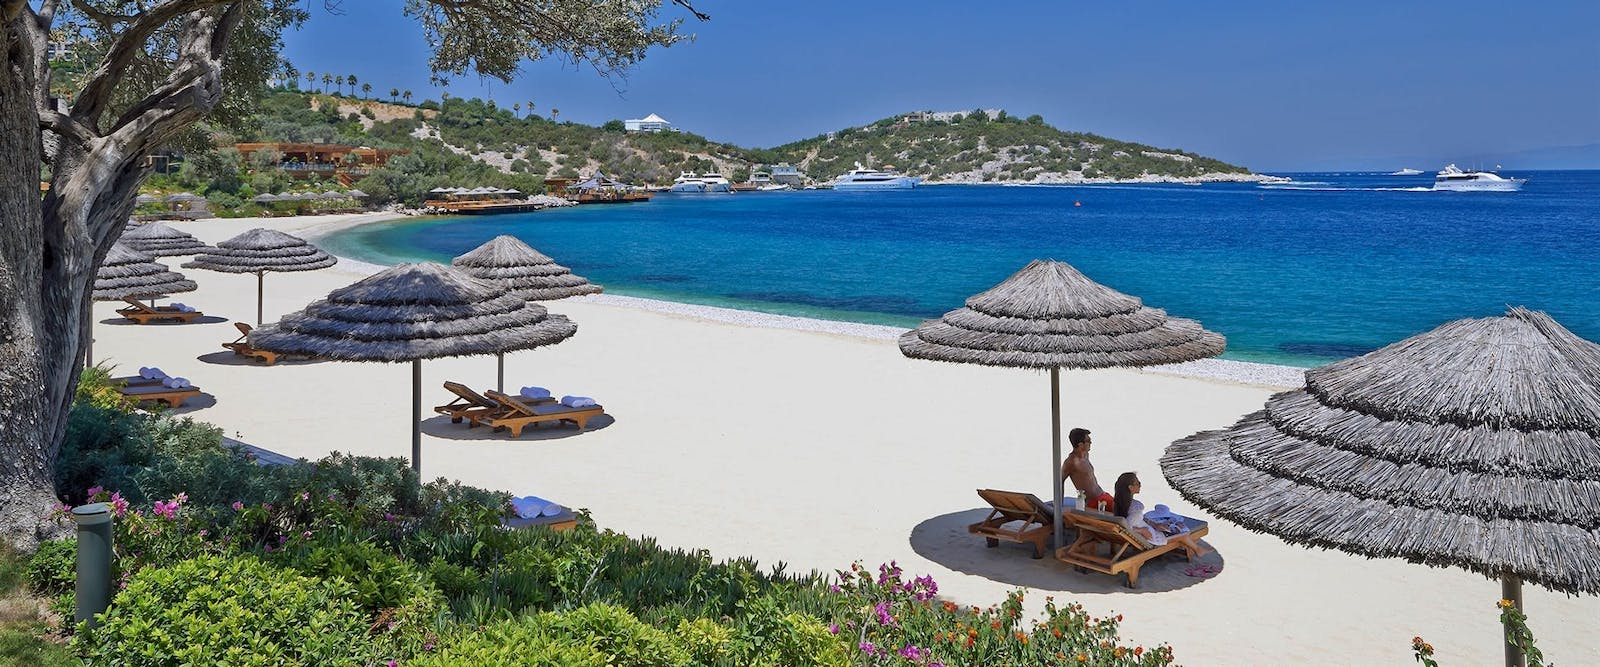 The Beach at Mandarin Oriental Bodrum, Turkey